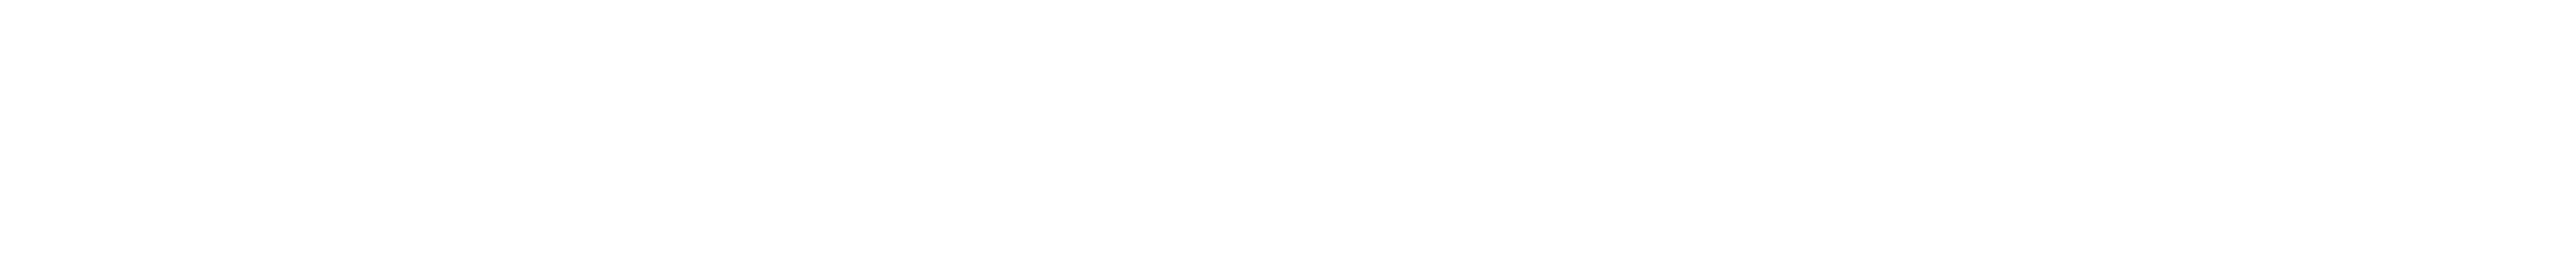 Chemical Baby Clothing